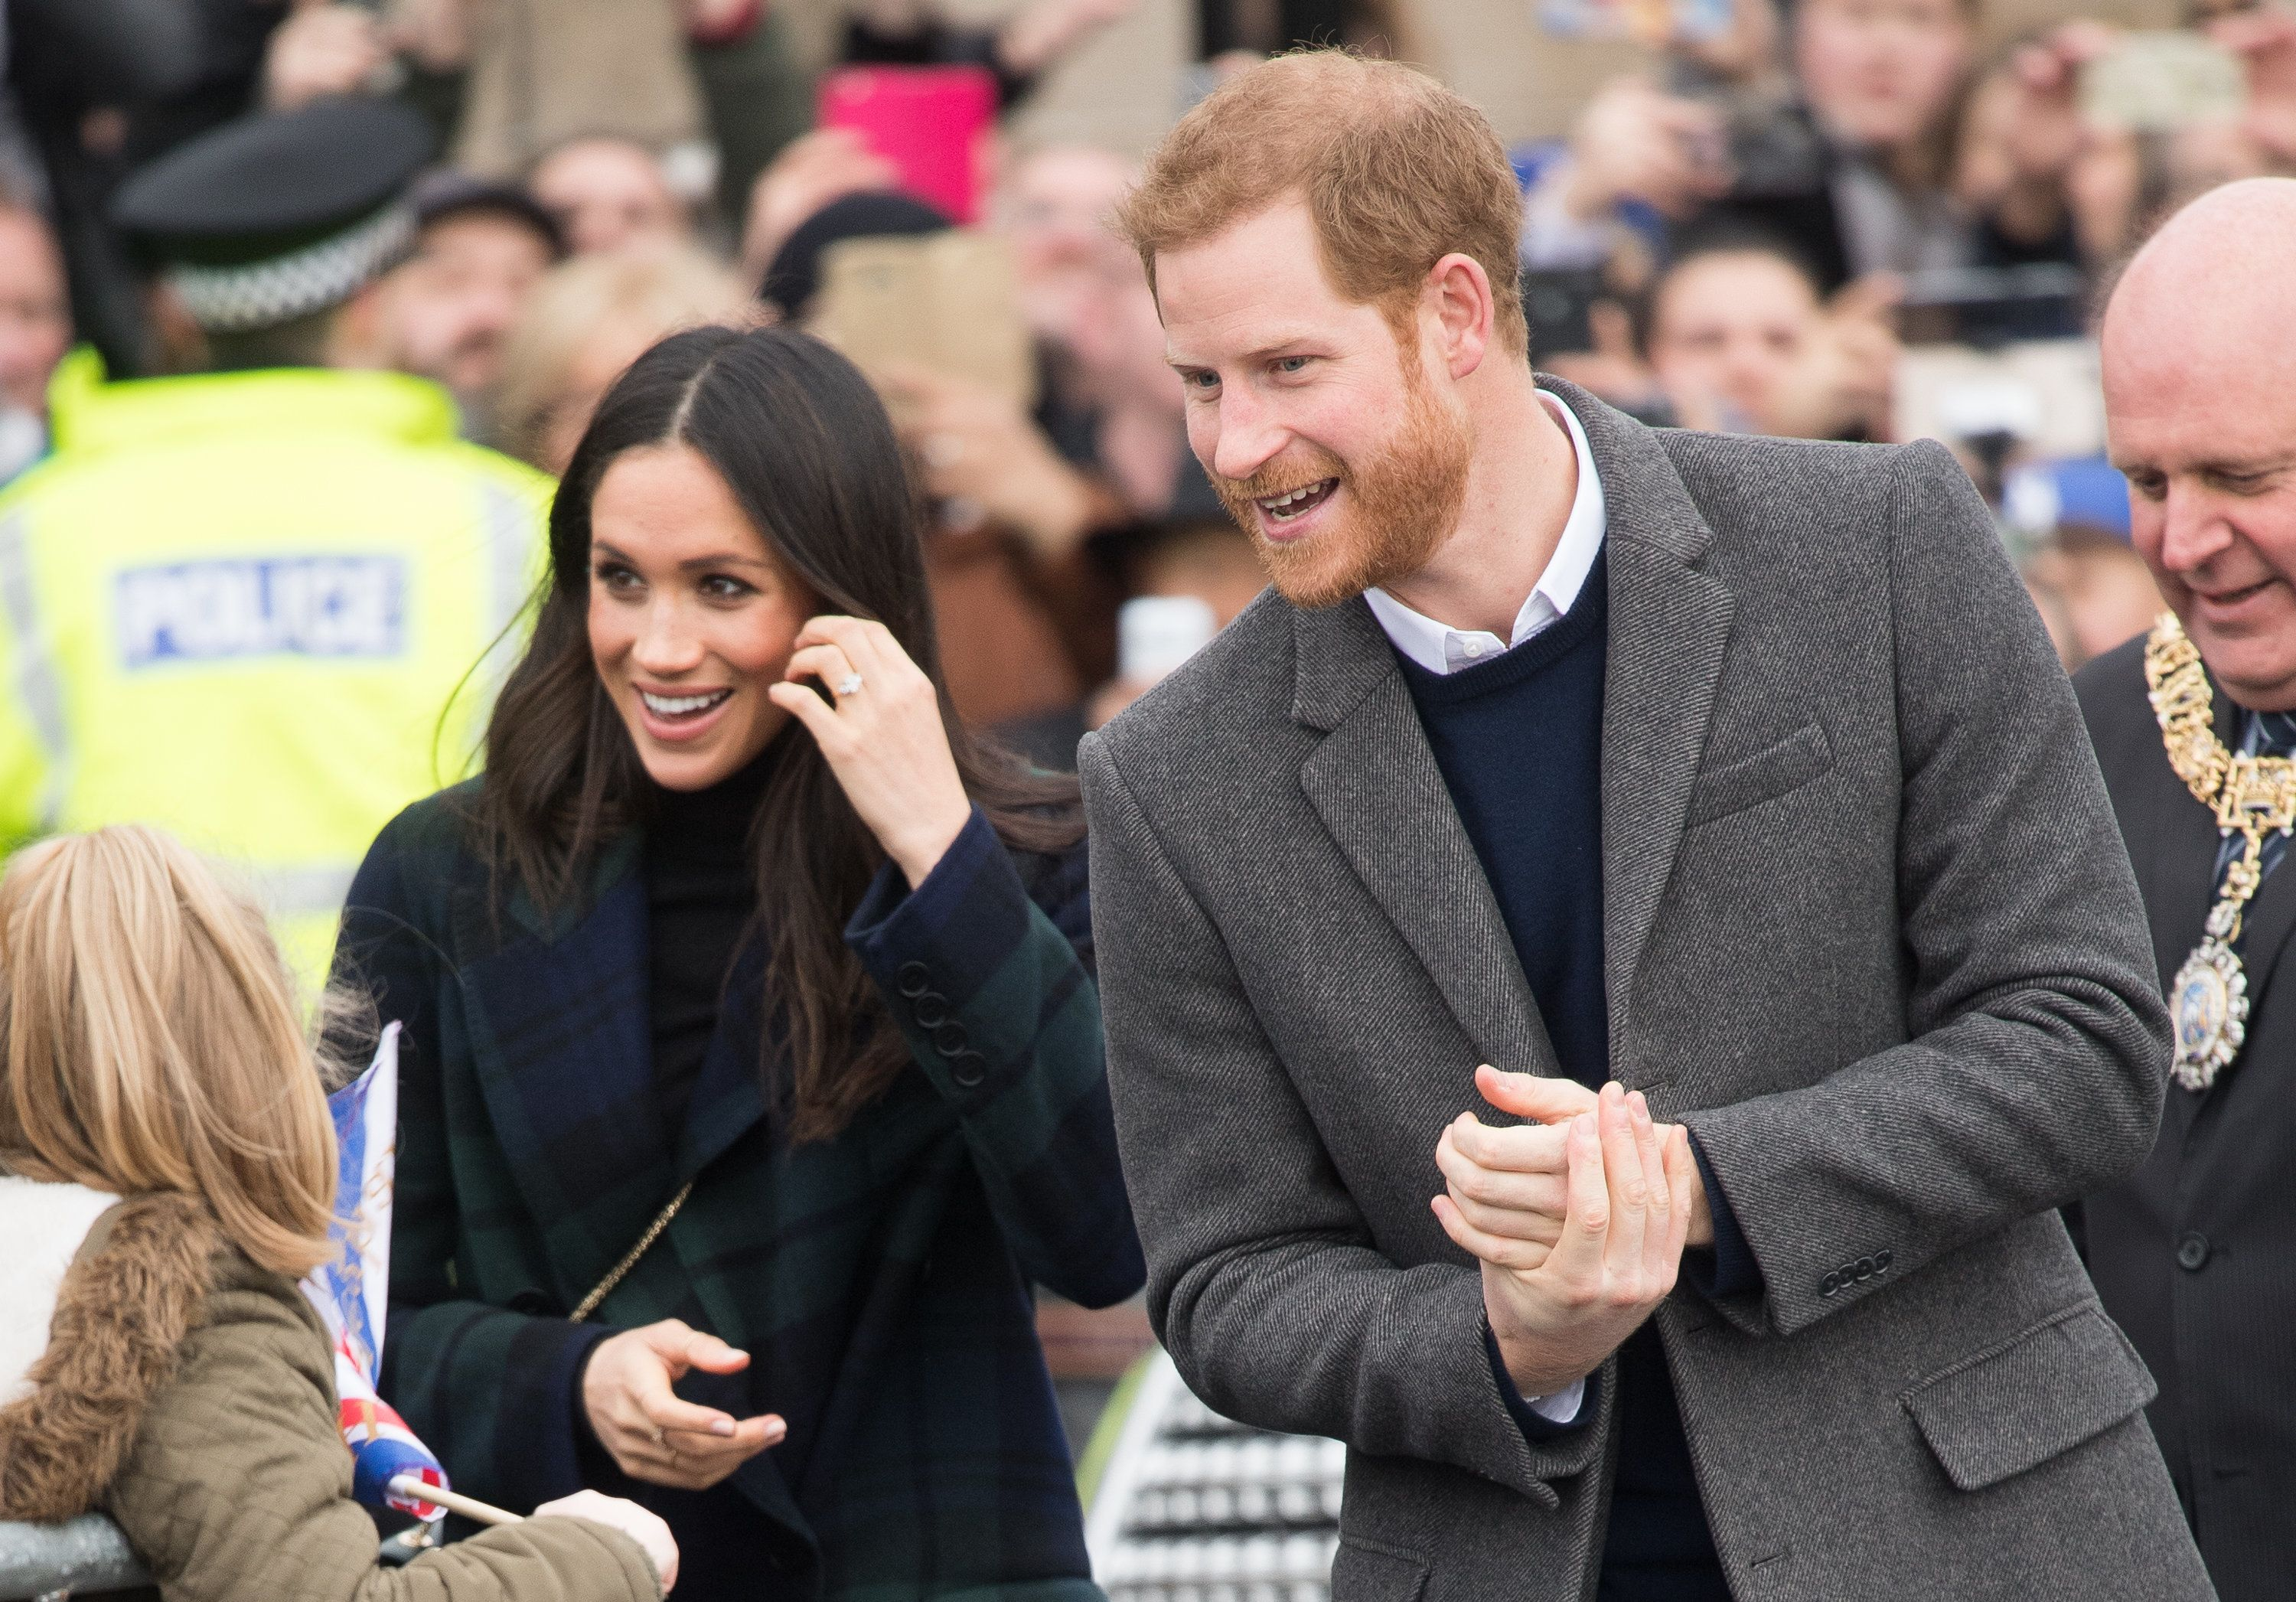 Meghan Markle and Prince Harry greet fans on their way to Edinburgh Castle on Feb. 13. Markle gave one Filipino woman a